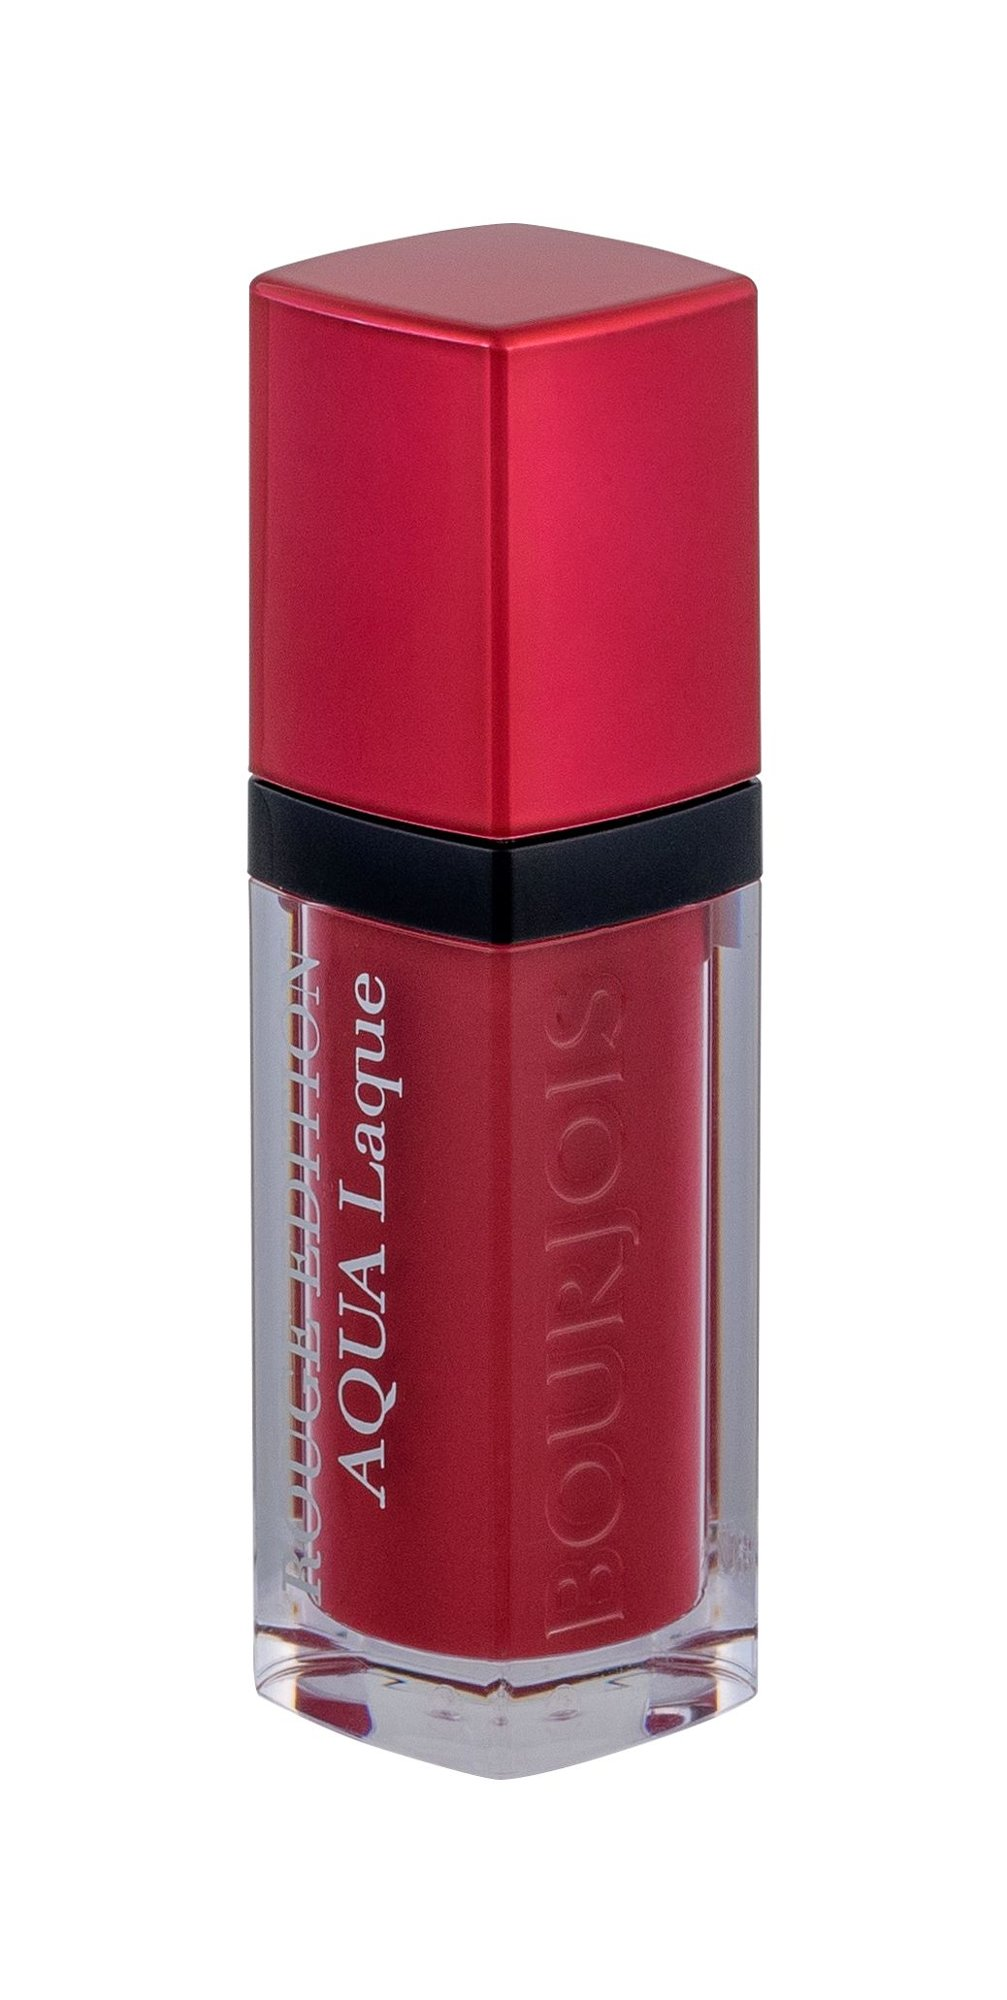 BOURJOIS Paris Rouge Edition Cosmetic 7,7ml 04 Viens Si Tu Roses